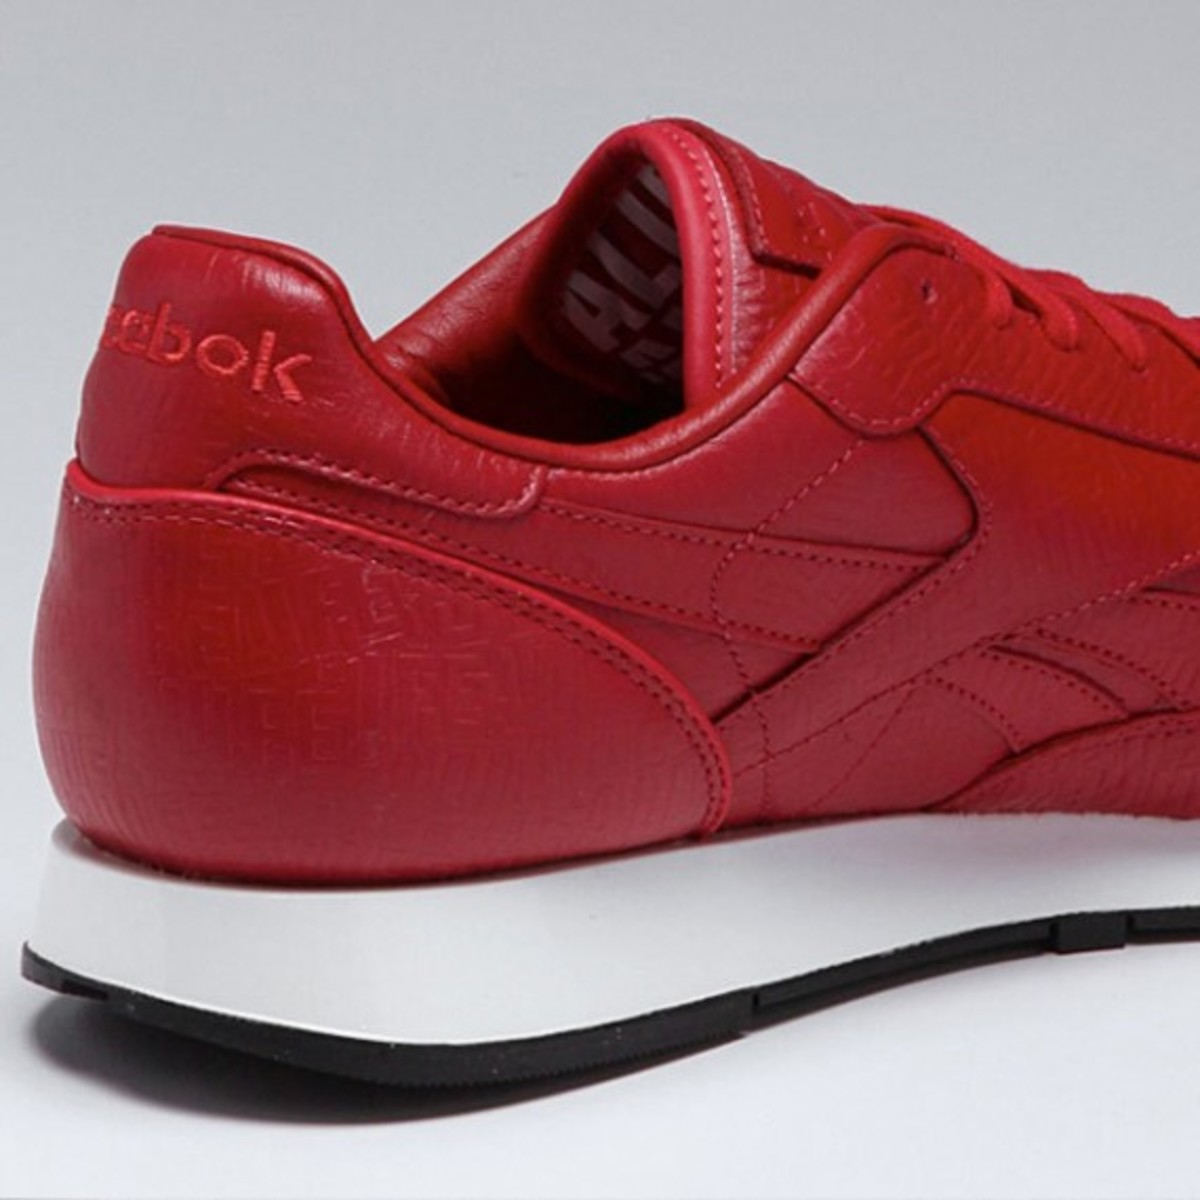 alife-reebok-classic-leather-lux-red-05